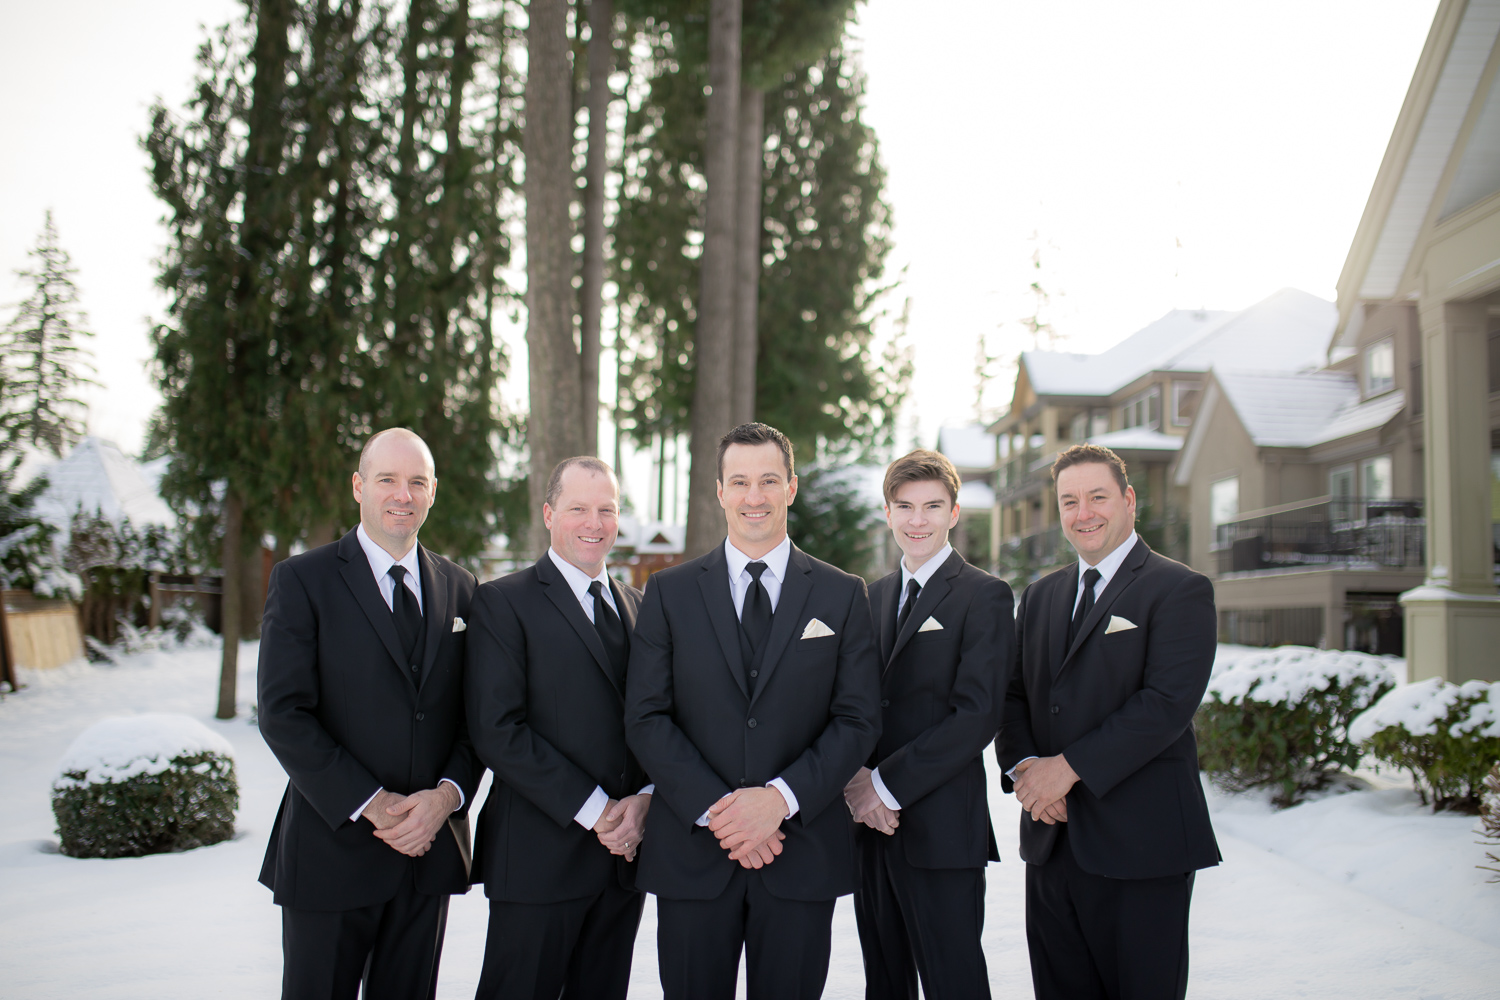 Surrey Winter Wedding Photographer